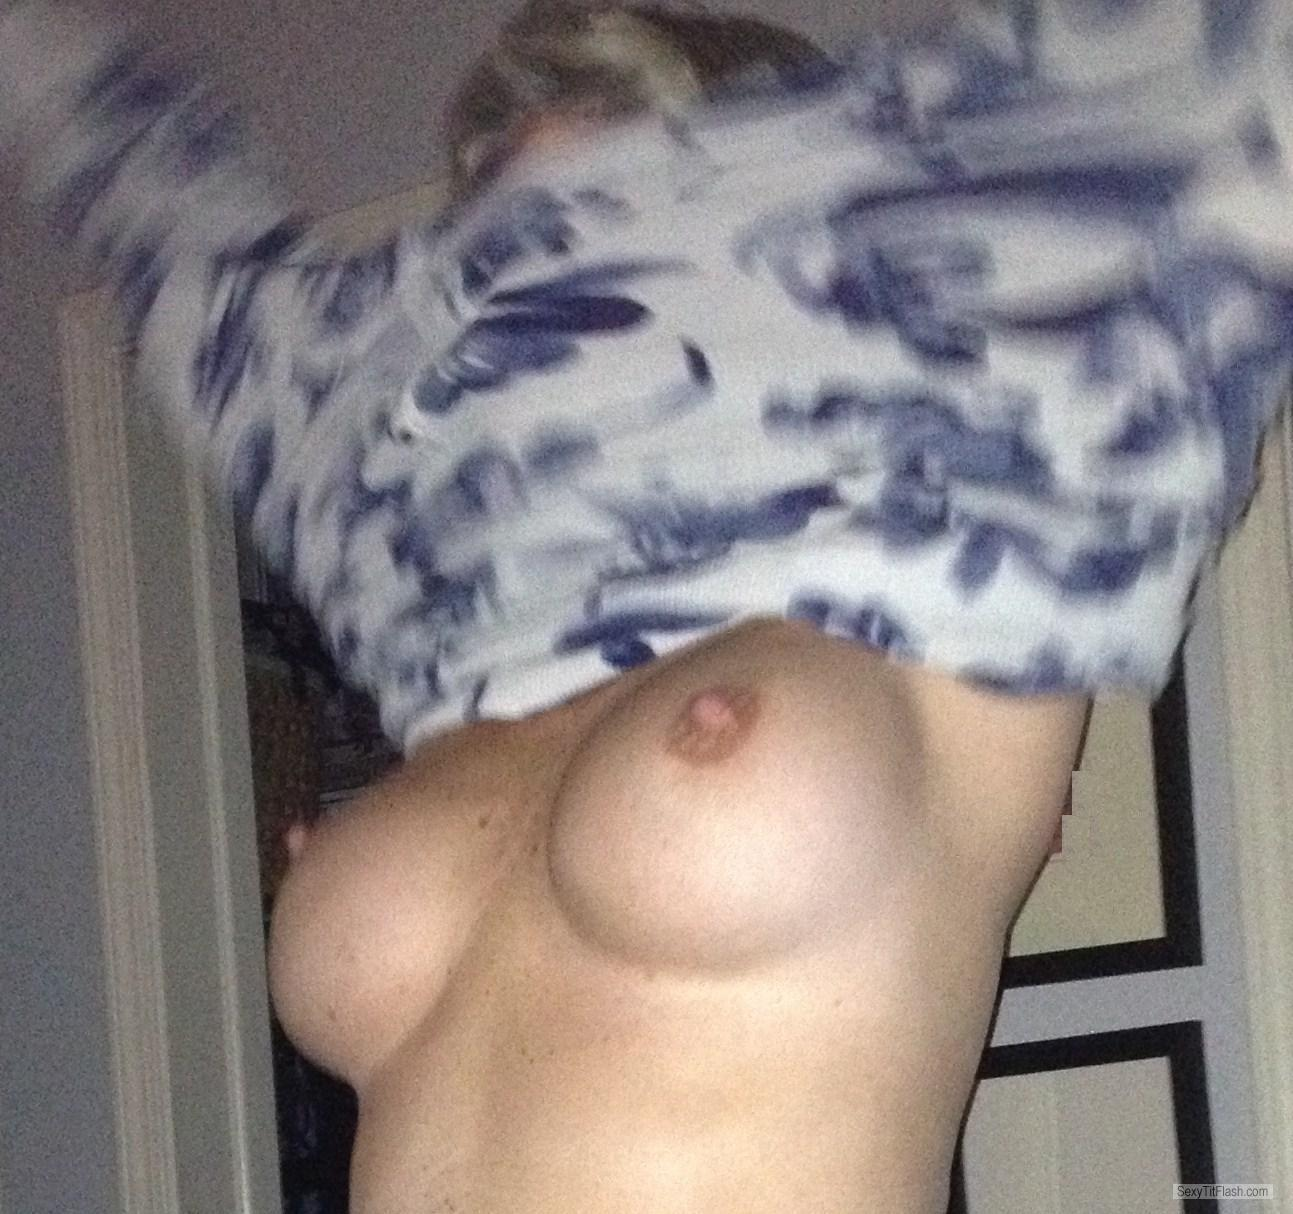 Tit Flash: Wife's Medium Tits - Summer Sun from United States